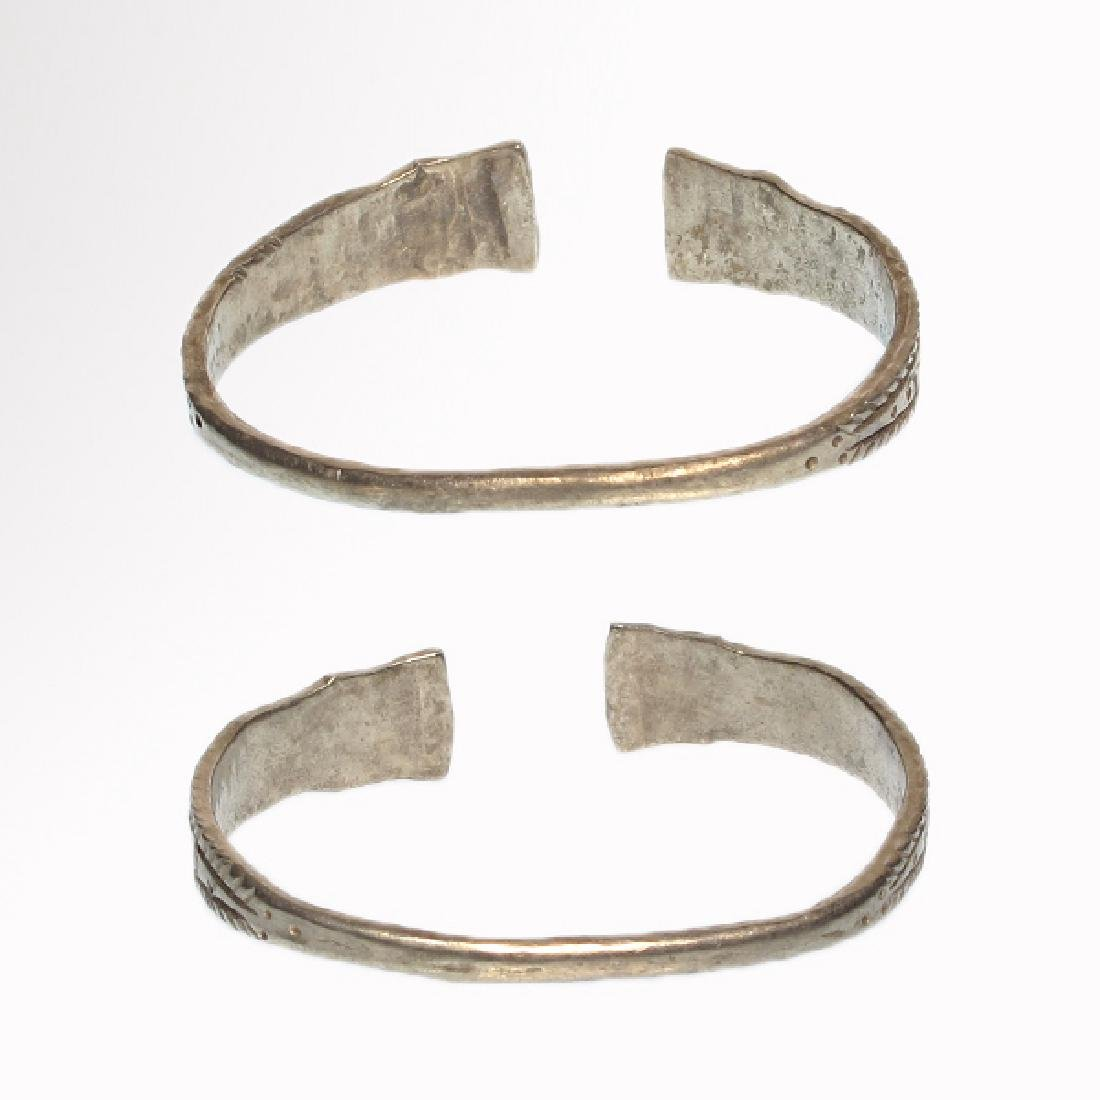 Pair of Celtic Silver Bracelets, Iron Age - 6